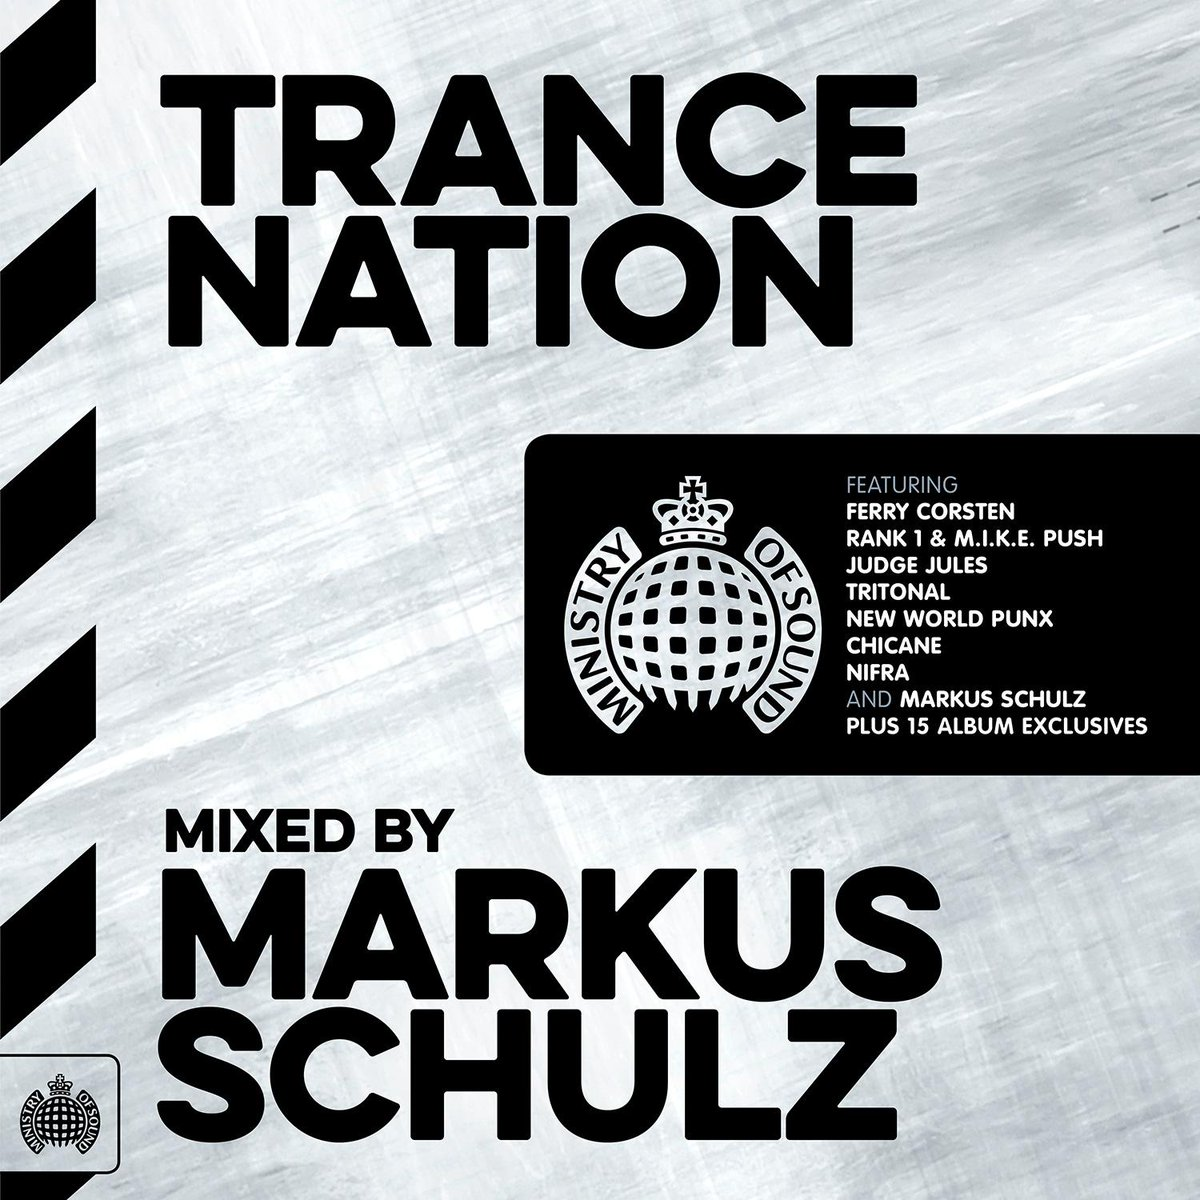 Excited for the next Trance Nation album, as @MarkusSchulz takes on this legendary series! http://t.co/RKdH7u0nWV http://t.co/2aYD5IC6R4